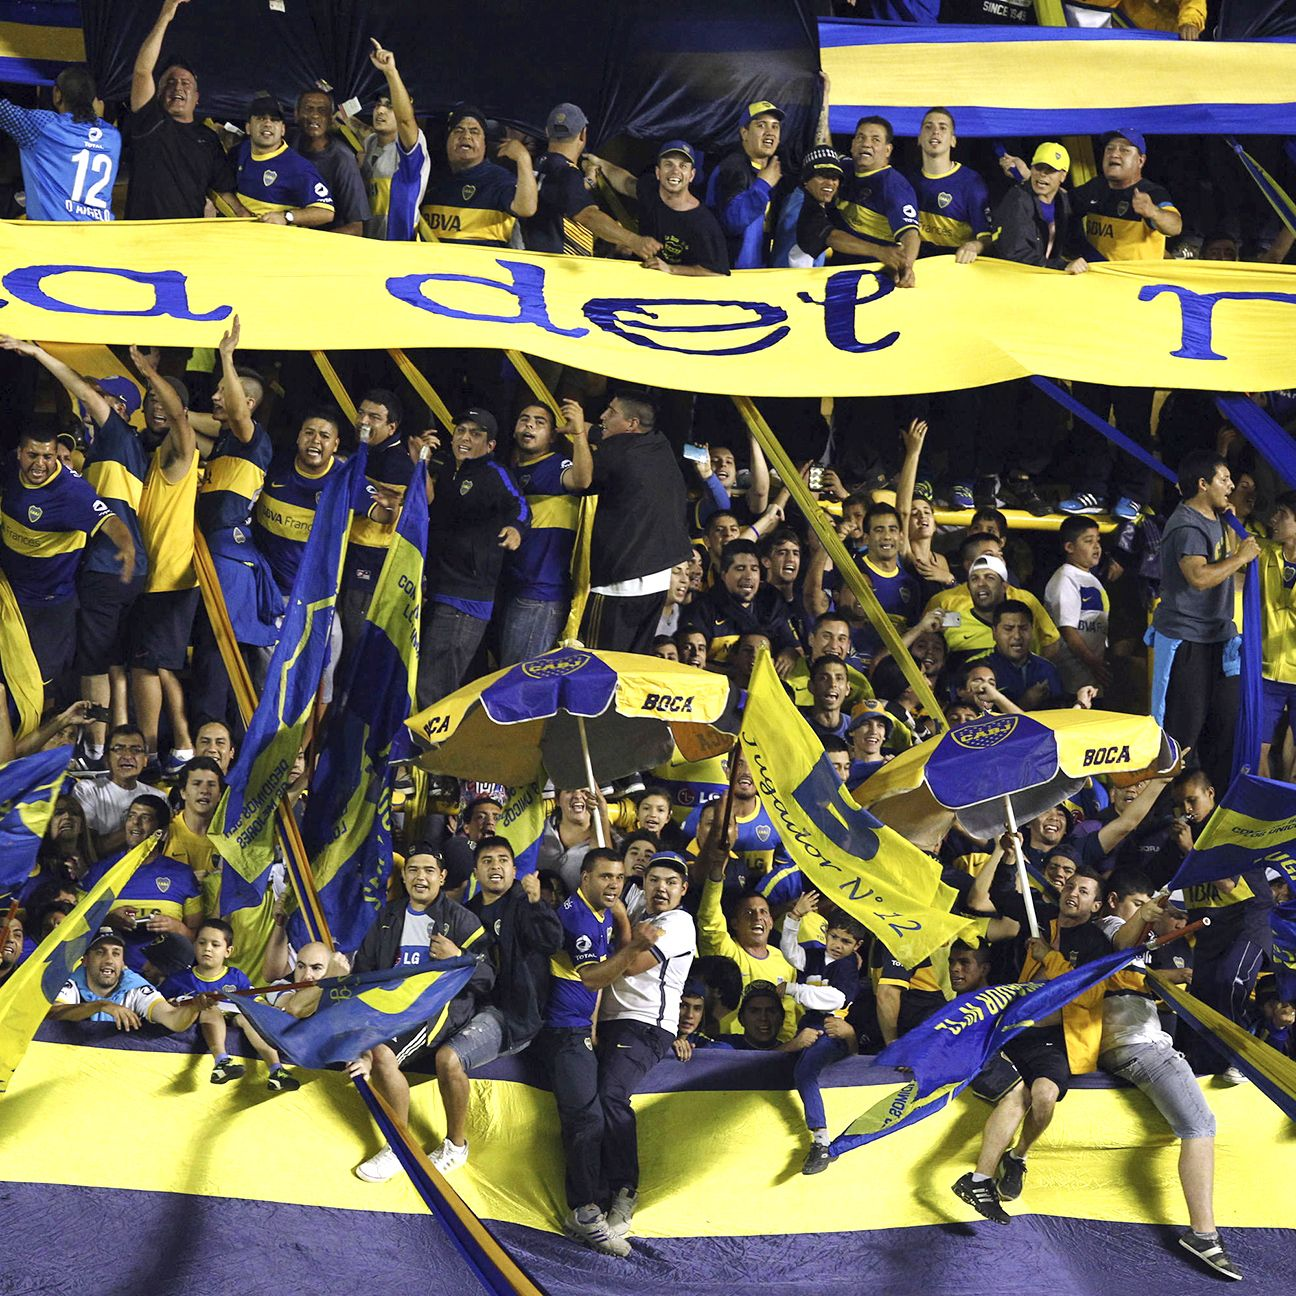 Boca Juniors fans at the La Bombonera stadium.